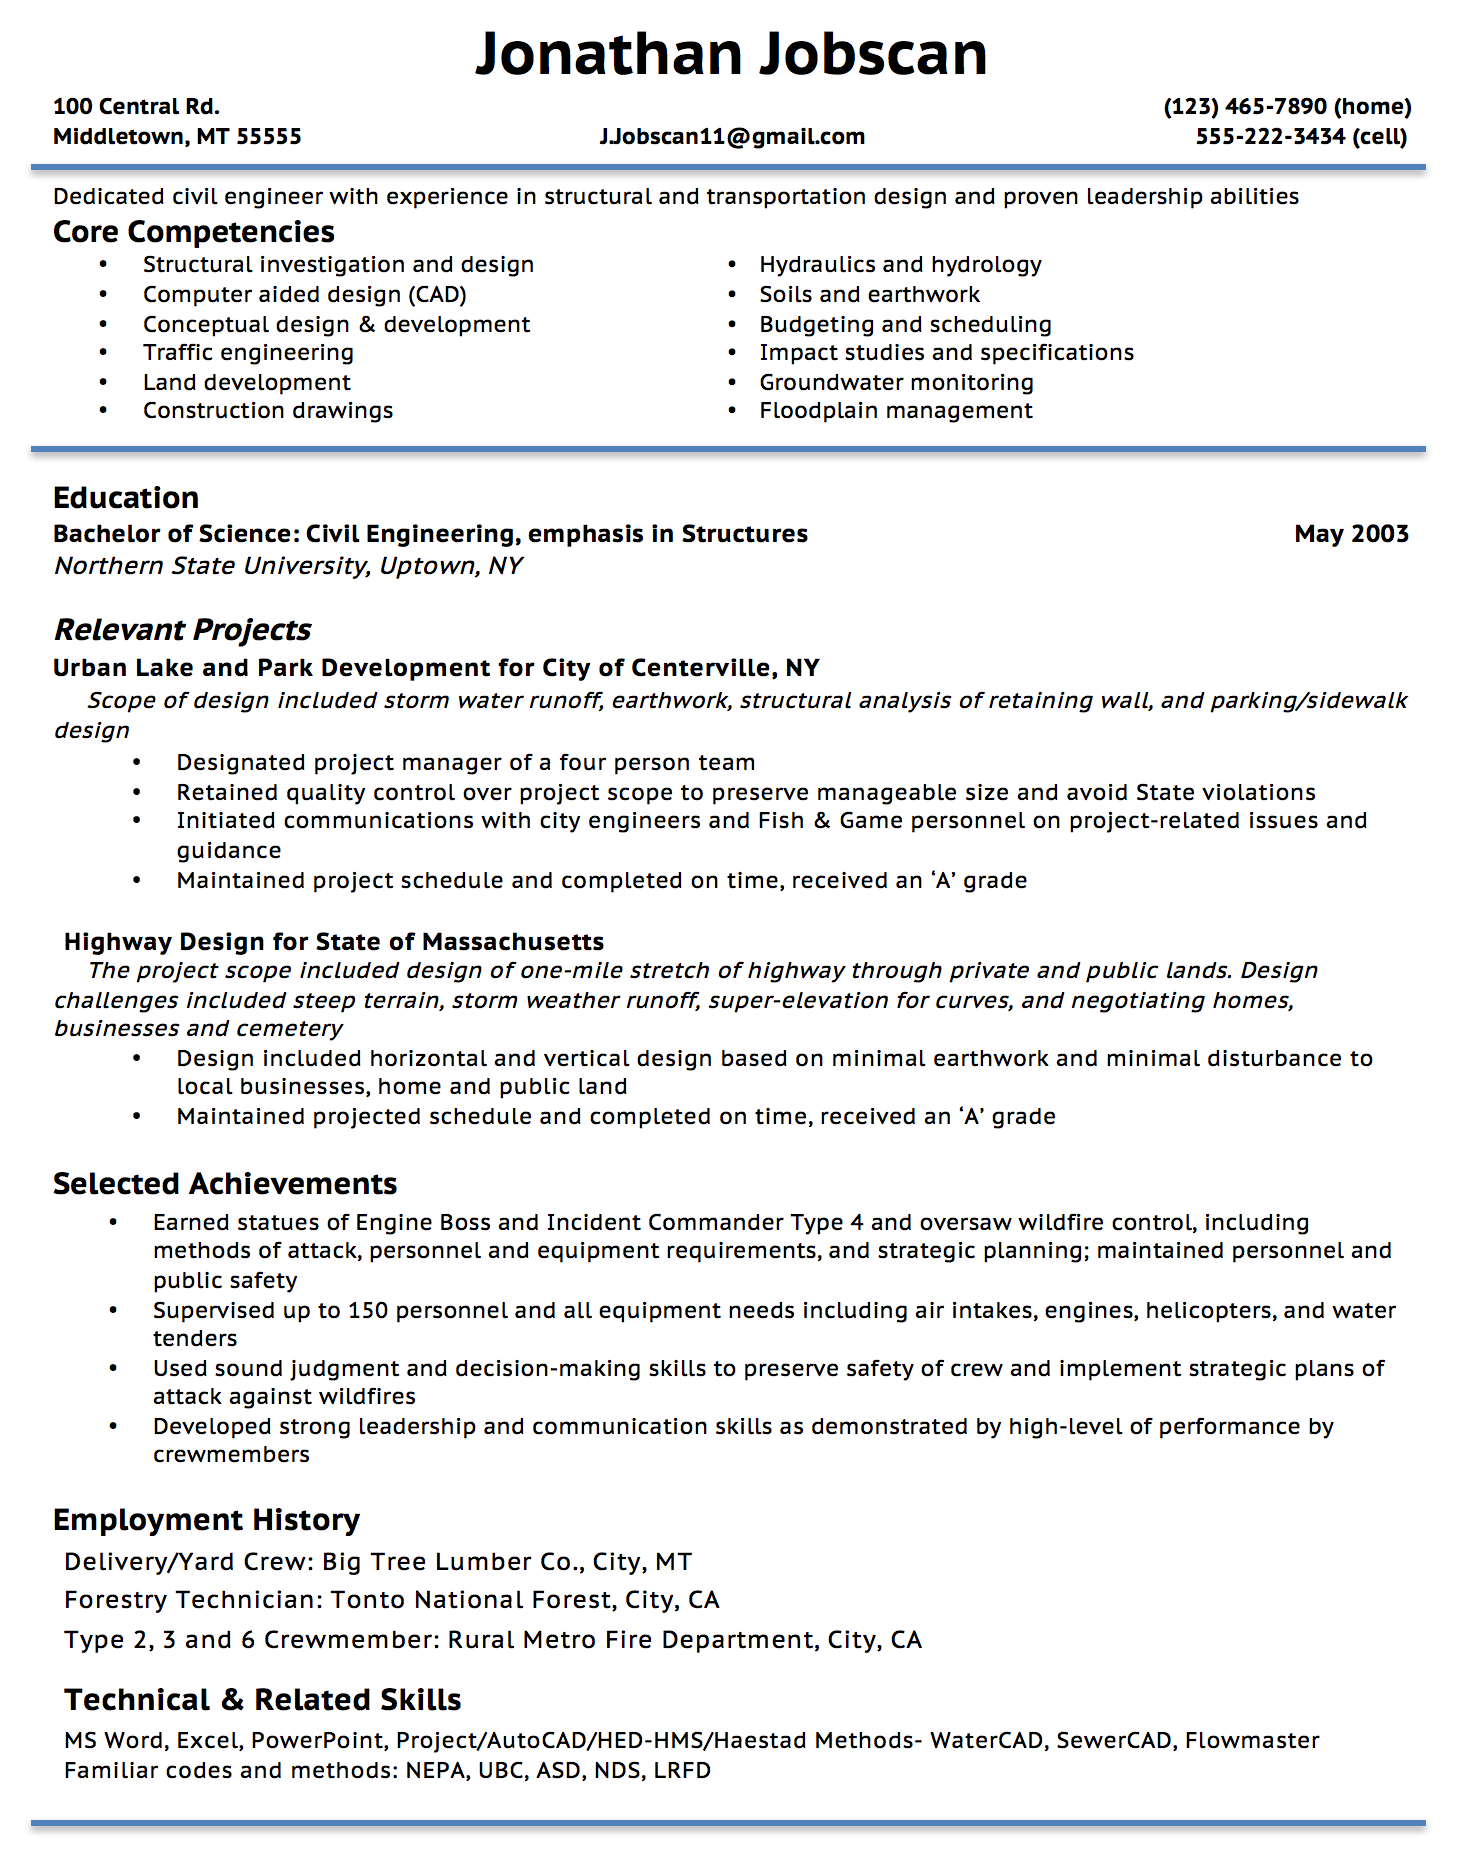 Opposenewapstandardsus  Inspiring Resume Writing Guide  Jobscan With Likable Example Of A Functional Resume Format With Amusing My Perfect Resume Customer Service Number Also Perfect Resumes In Addition Resume Vs Curriculum Vitae And Customer Service Call Center Resume As Well As Warehouse Resume Skills Additionally Do You Staple A Resume From Jobscanco With Opposenewapstandardsus  Likable Resume Writing Guide  Jobscan With Amusing Example Of A Functional Resume Format And Inspiring My Perfect Resume Customer Service Number Also Perfect Resumes In Addition Resume Vs Curriculum Vitae From Jobscanco